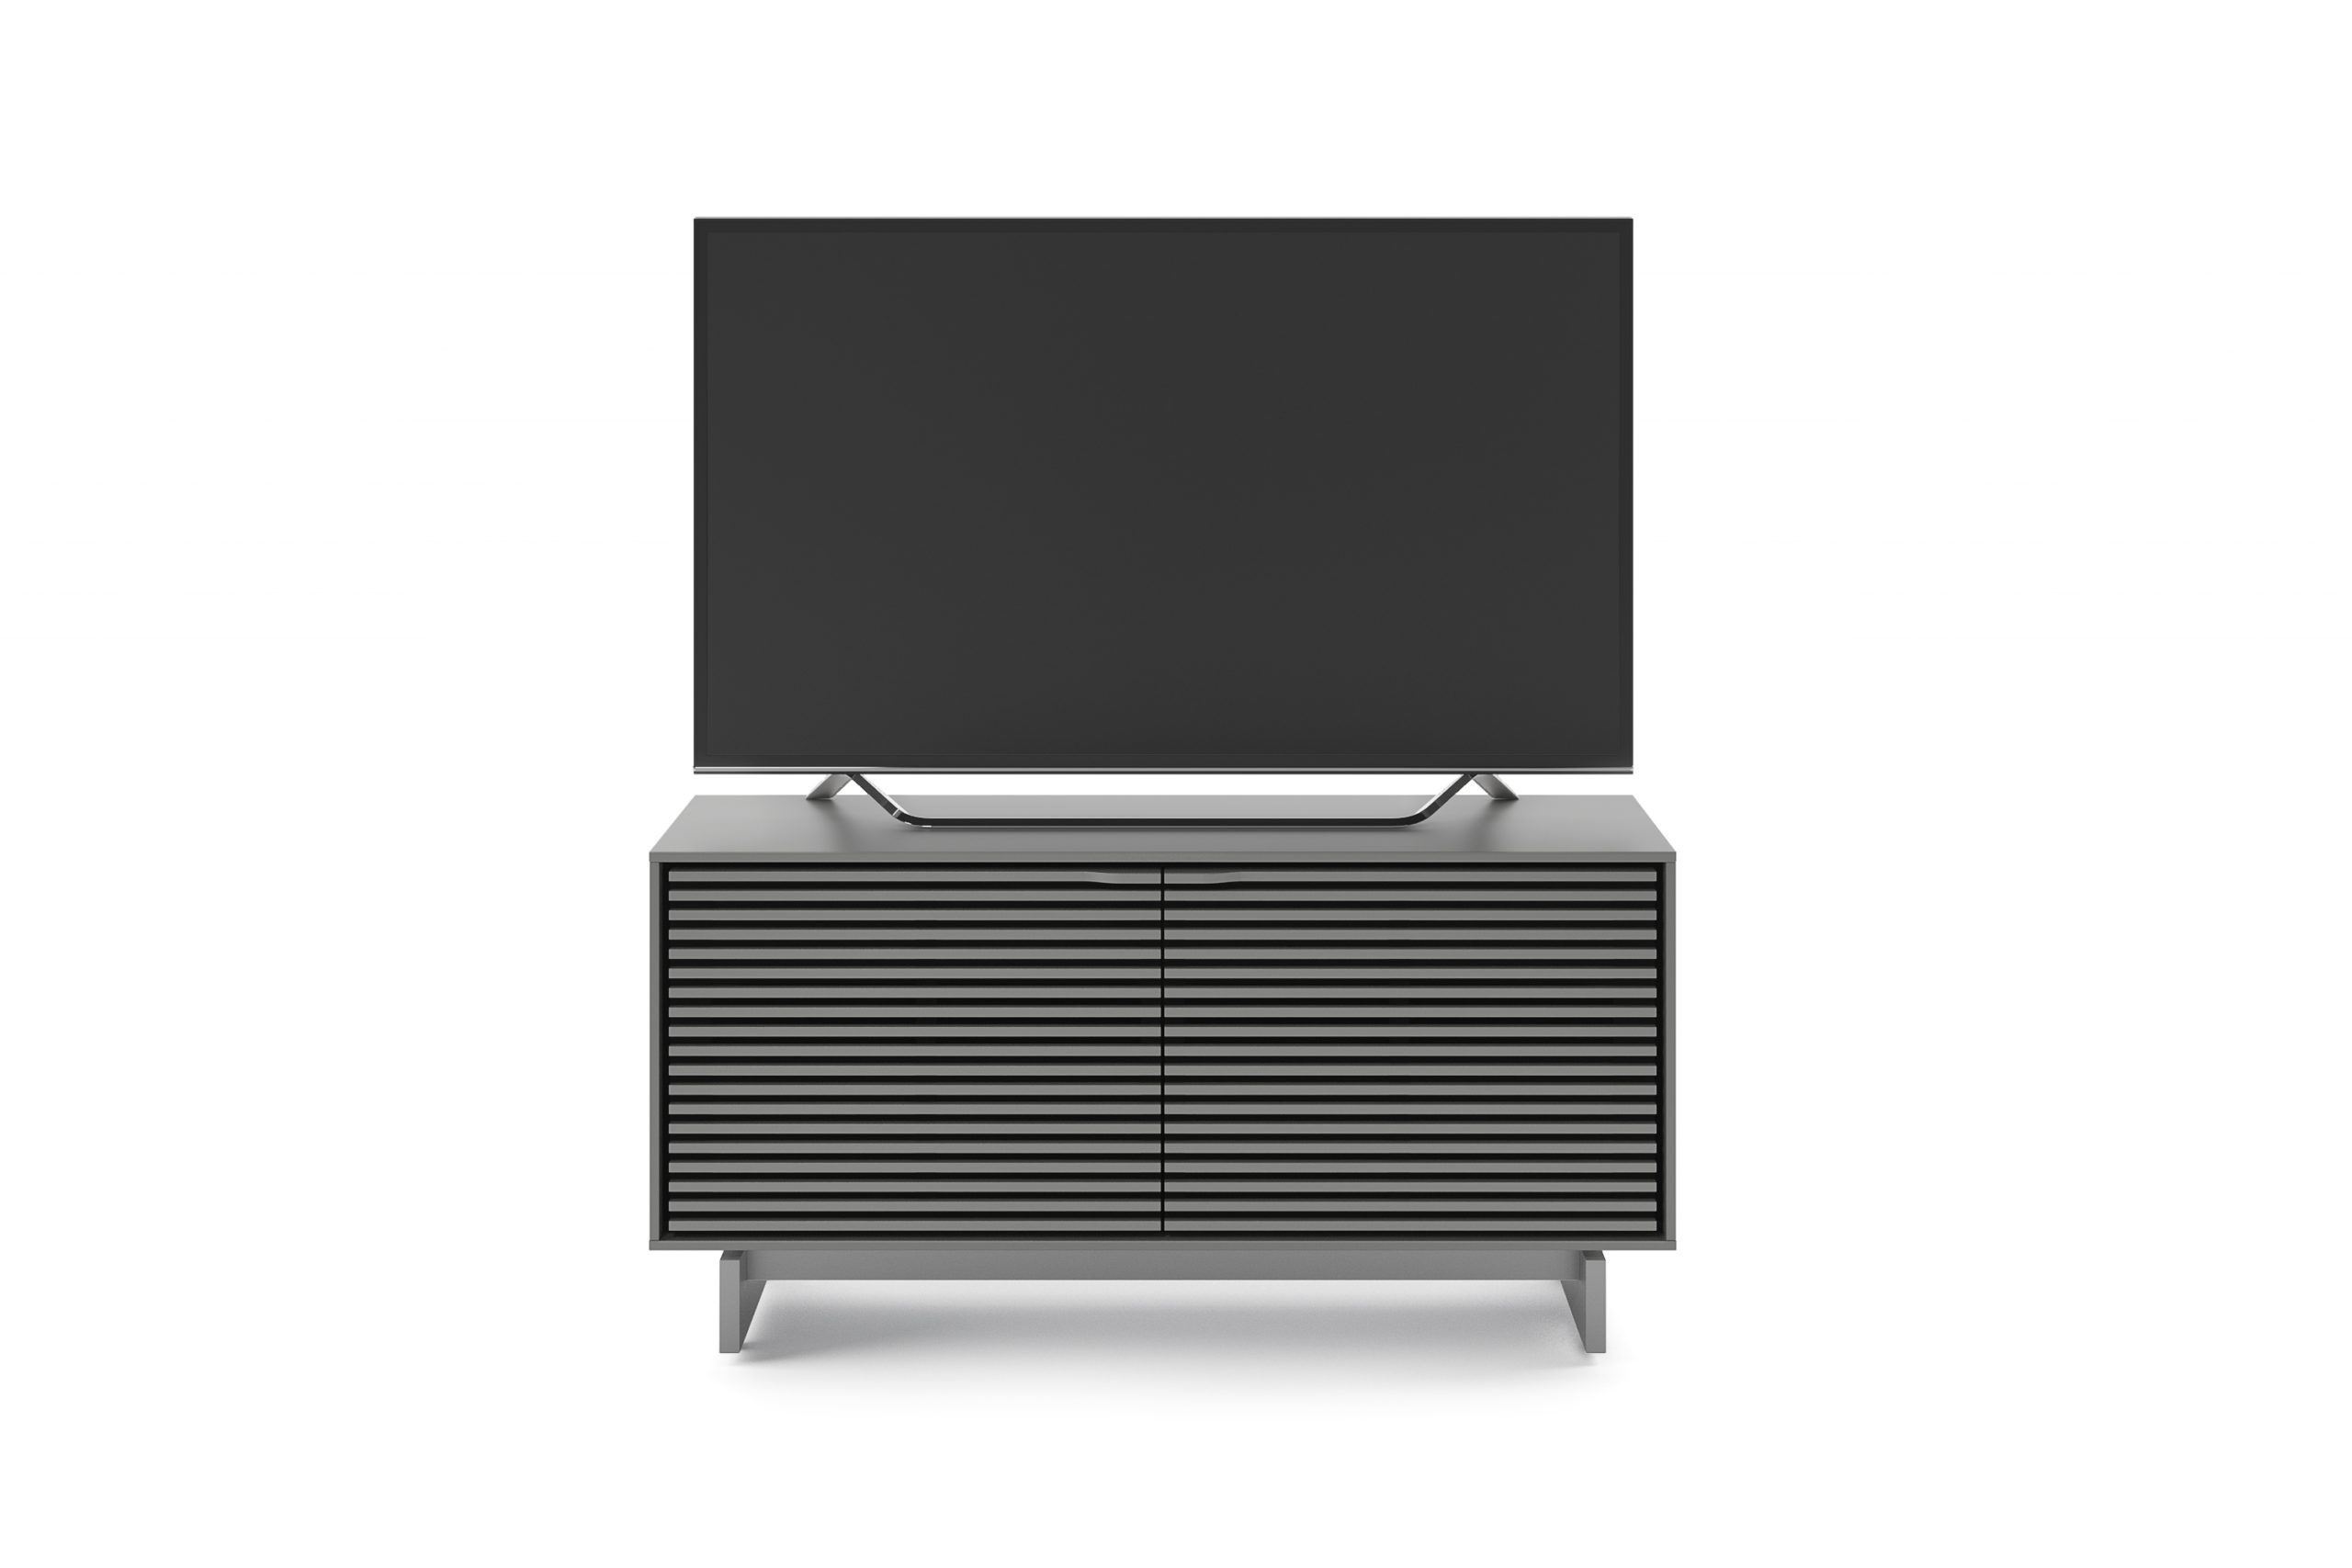 Align 7478 Small Modern TV Stand & Media Console | BDI Furniture